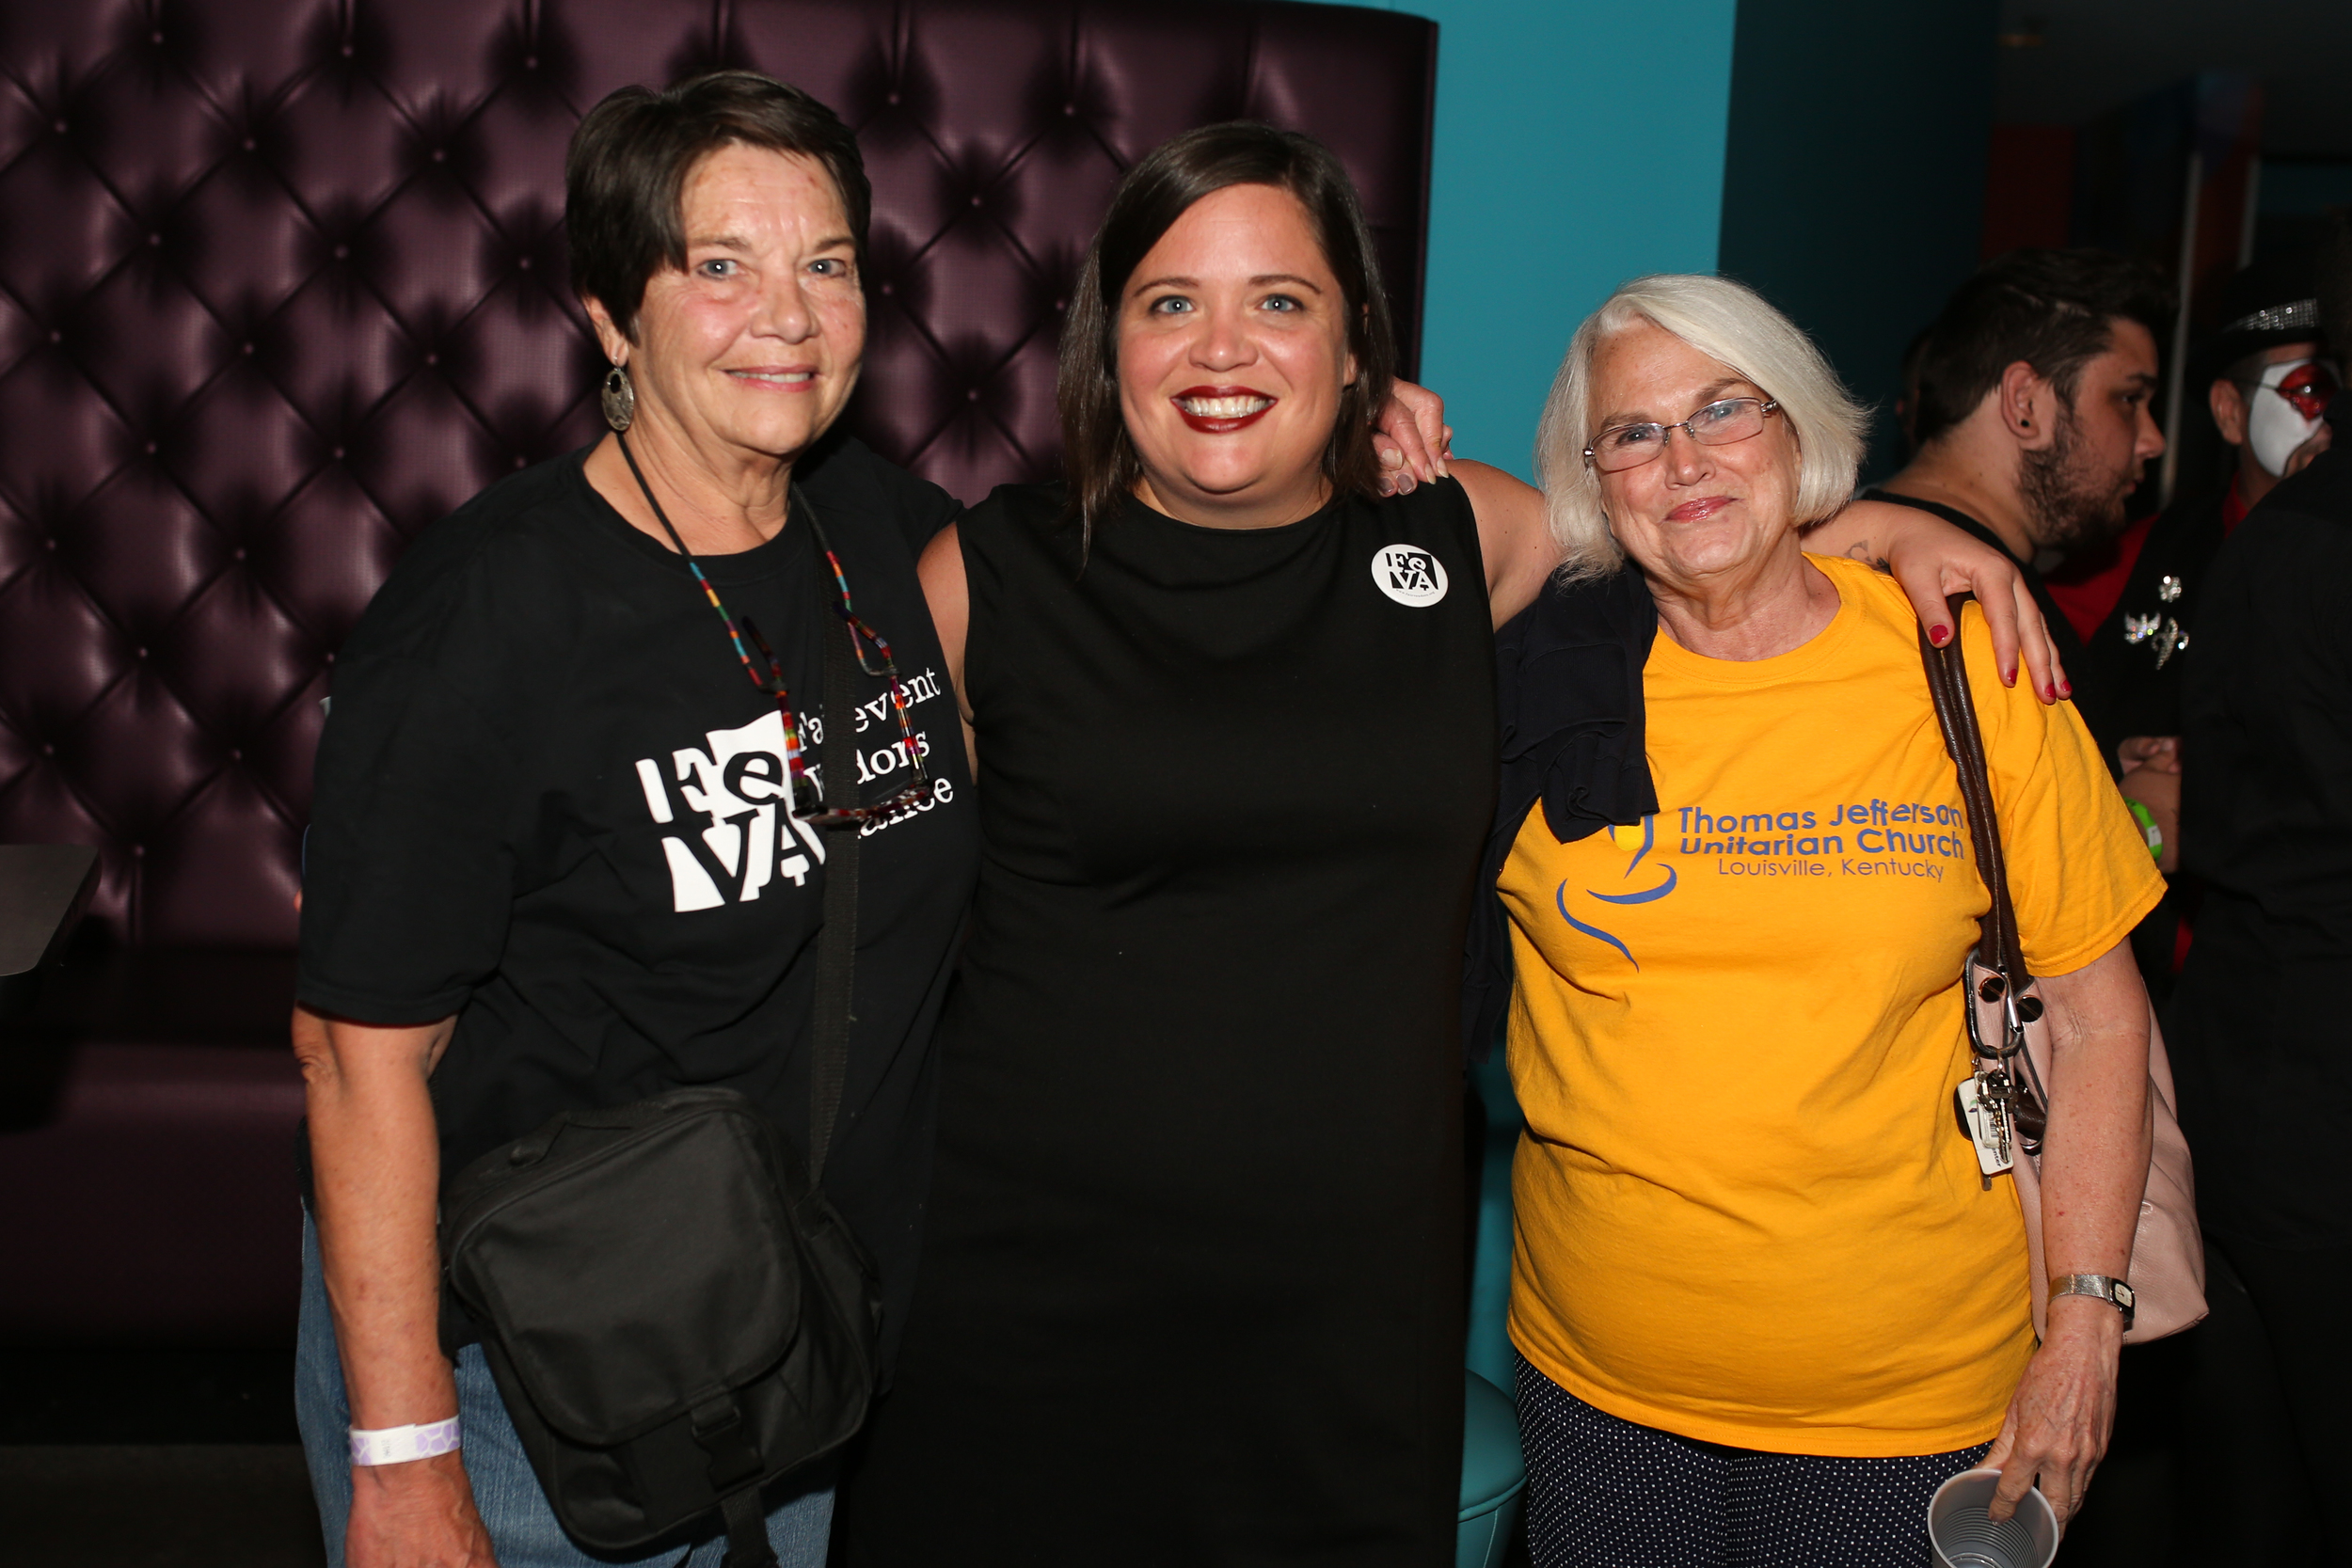 Pulse Orlando Benefit at PLAY Louisville 2016 FEVA Crystal Ludwick Photo LLC (35 of 216).jpg